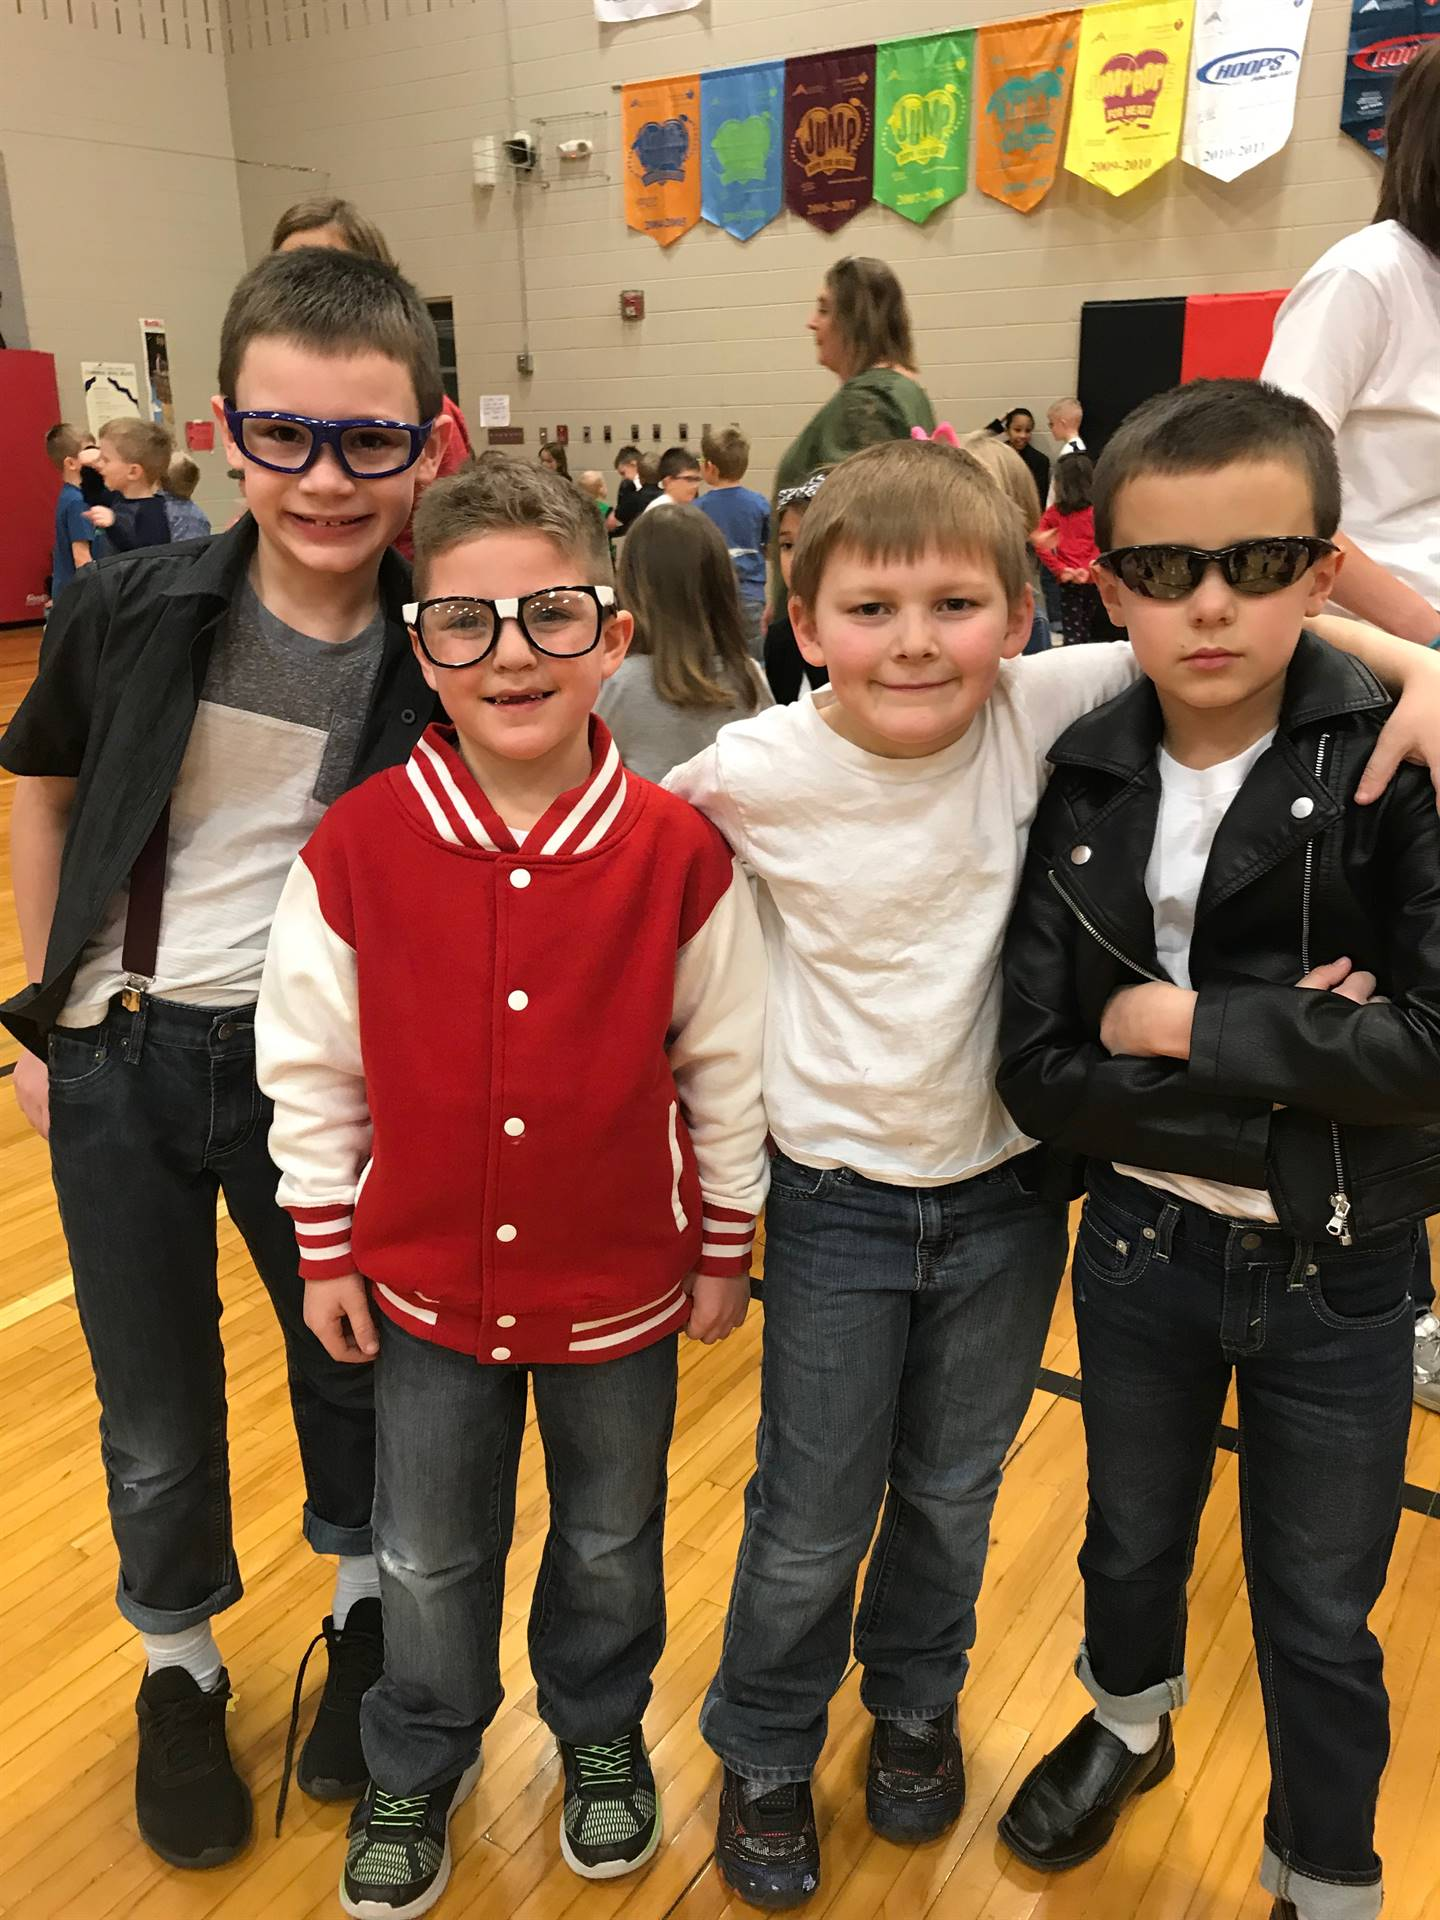 four elementary students dressed in 50's attire